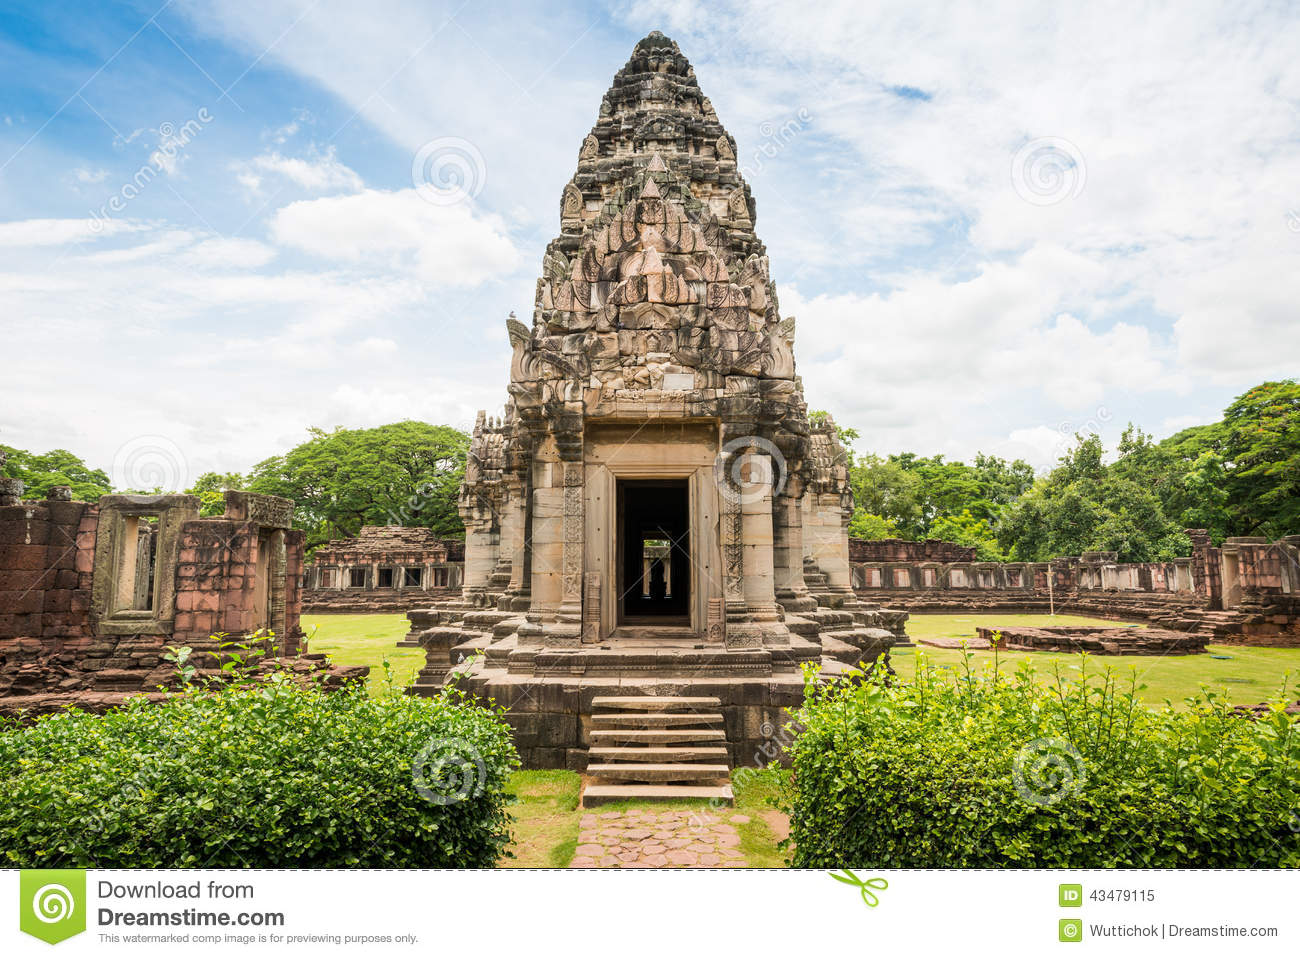 nakhon ratchasima hindu personals Nakhon ratchasima prasat ku pueai noi or prasat puay noi is a large the site dates back to the 11th to 12th century ad when it was used as a hindu.